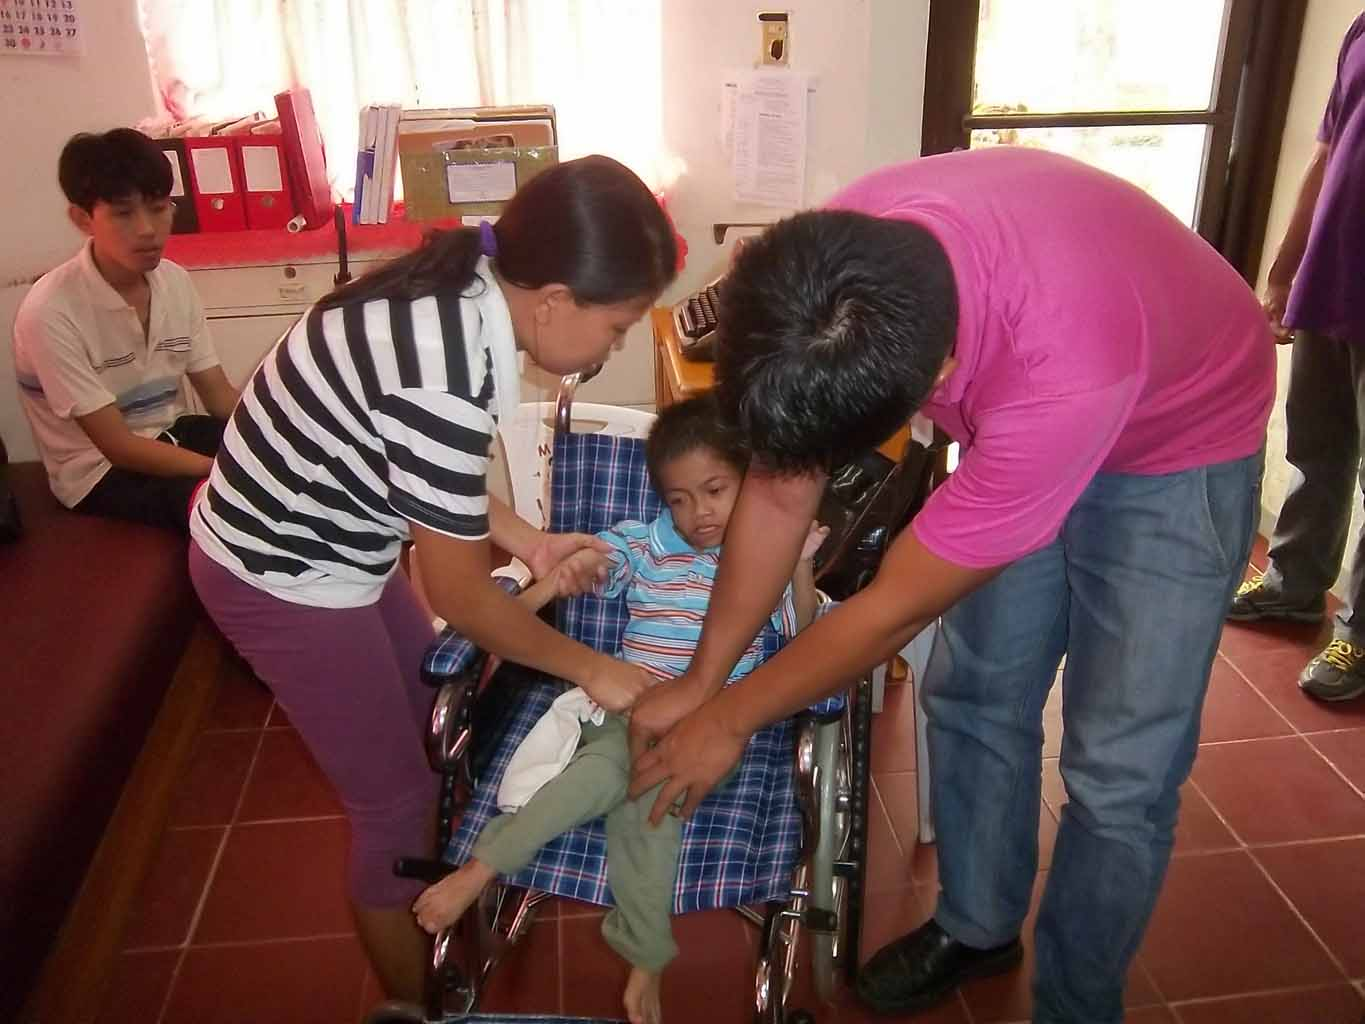 Assisting a child in his wheelchair